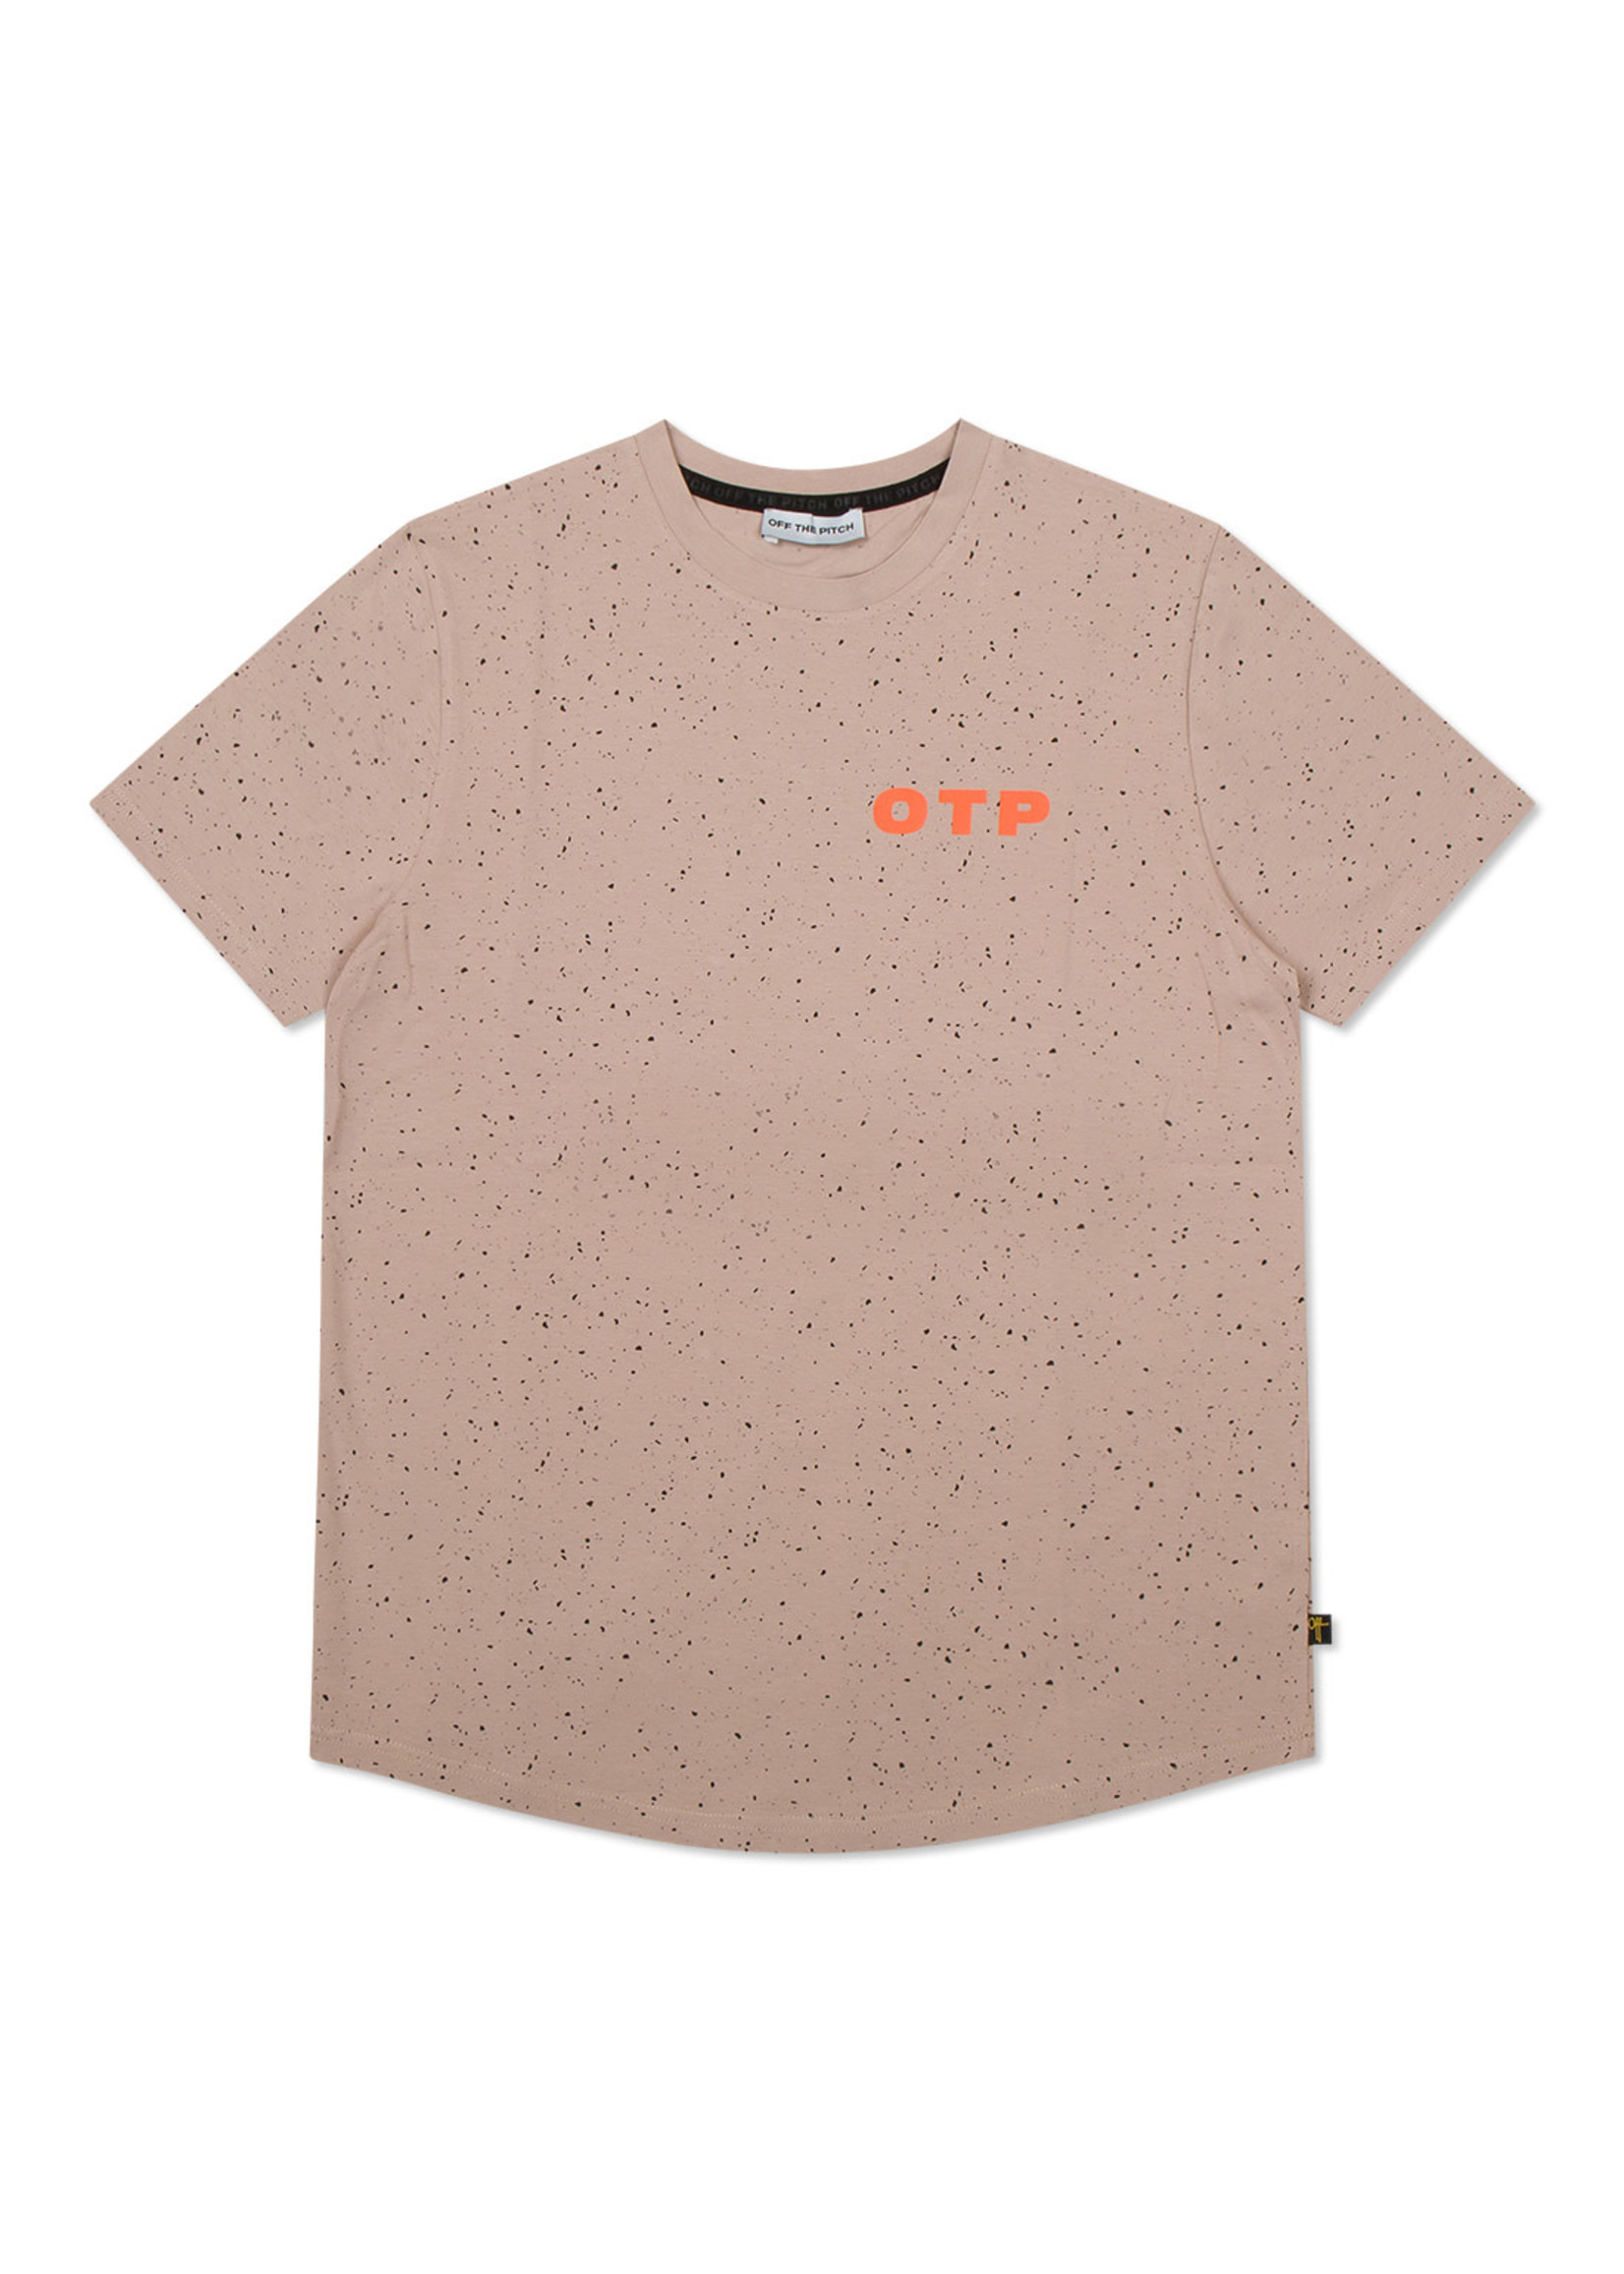 OFF THE PITCH The Cosmic Slim Fit Tee - Taupe